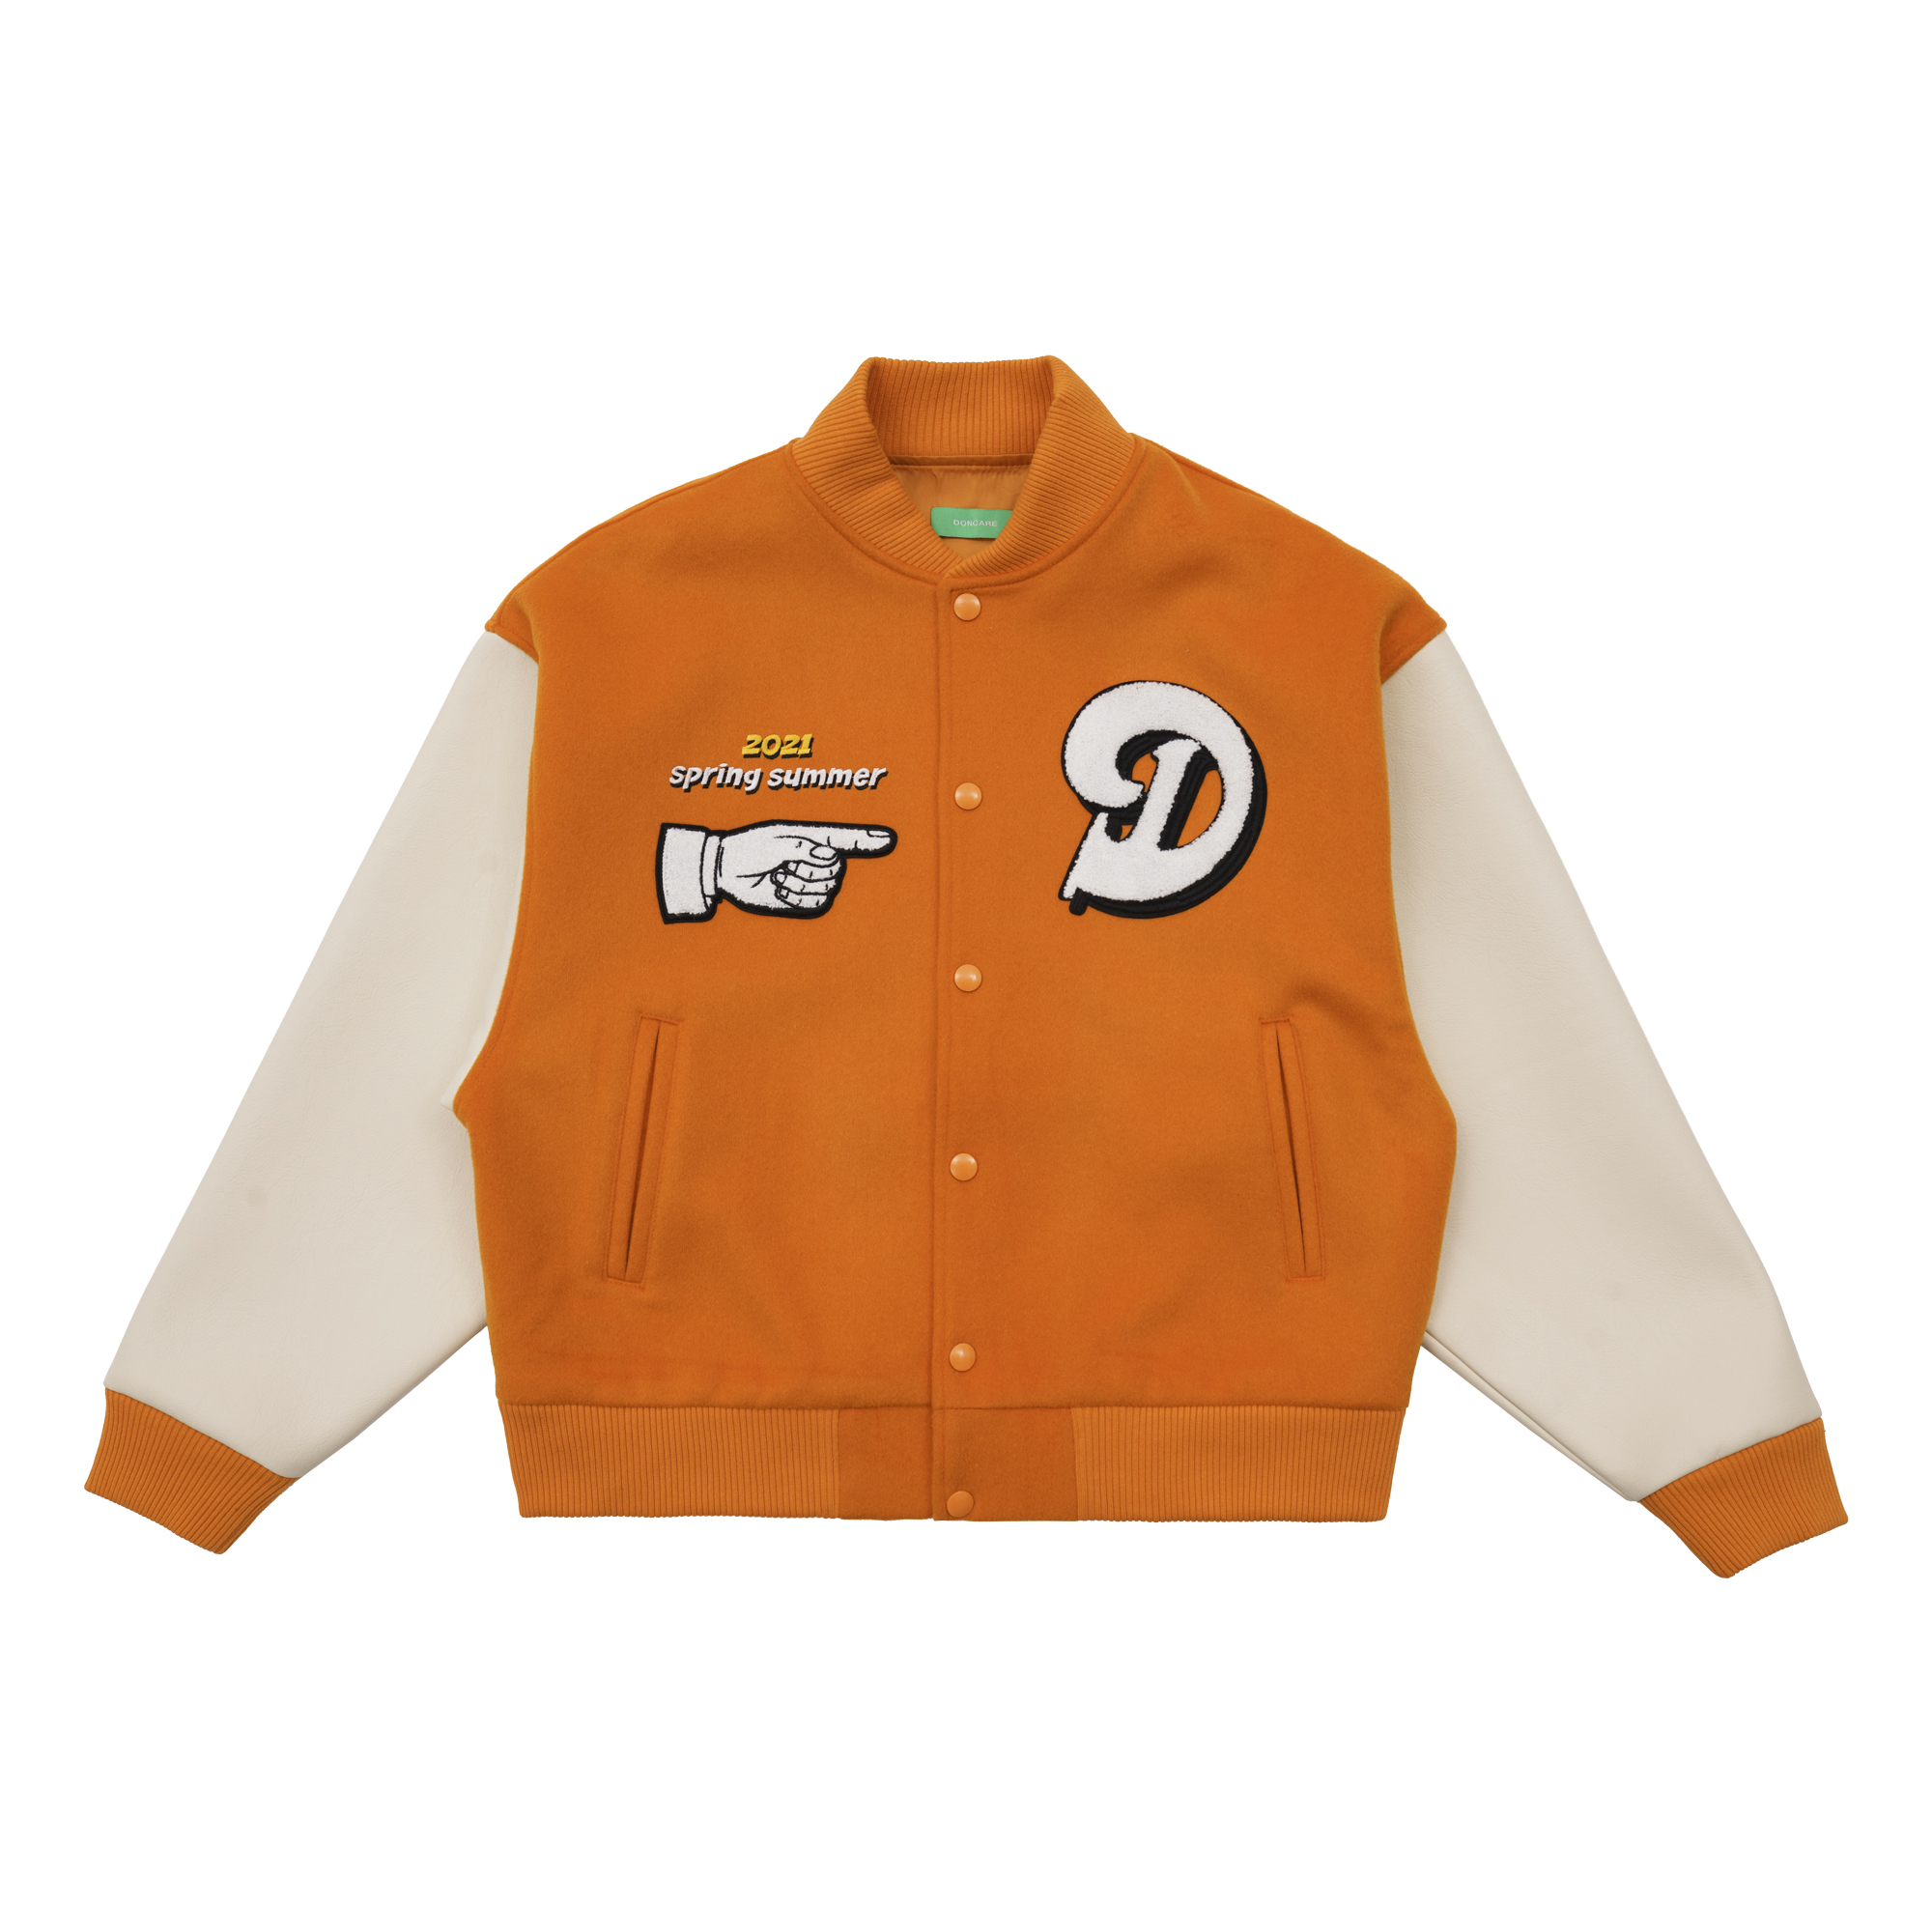 Doncare Legs Prom The Twist Varsity Jacket FFF For Fast Fame Hip Hop Streetwear